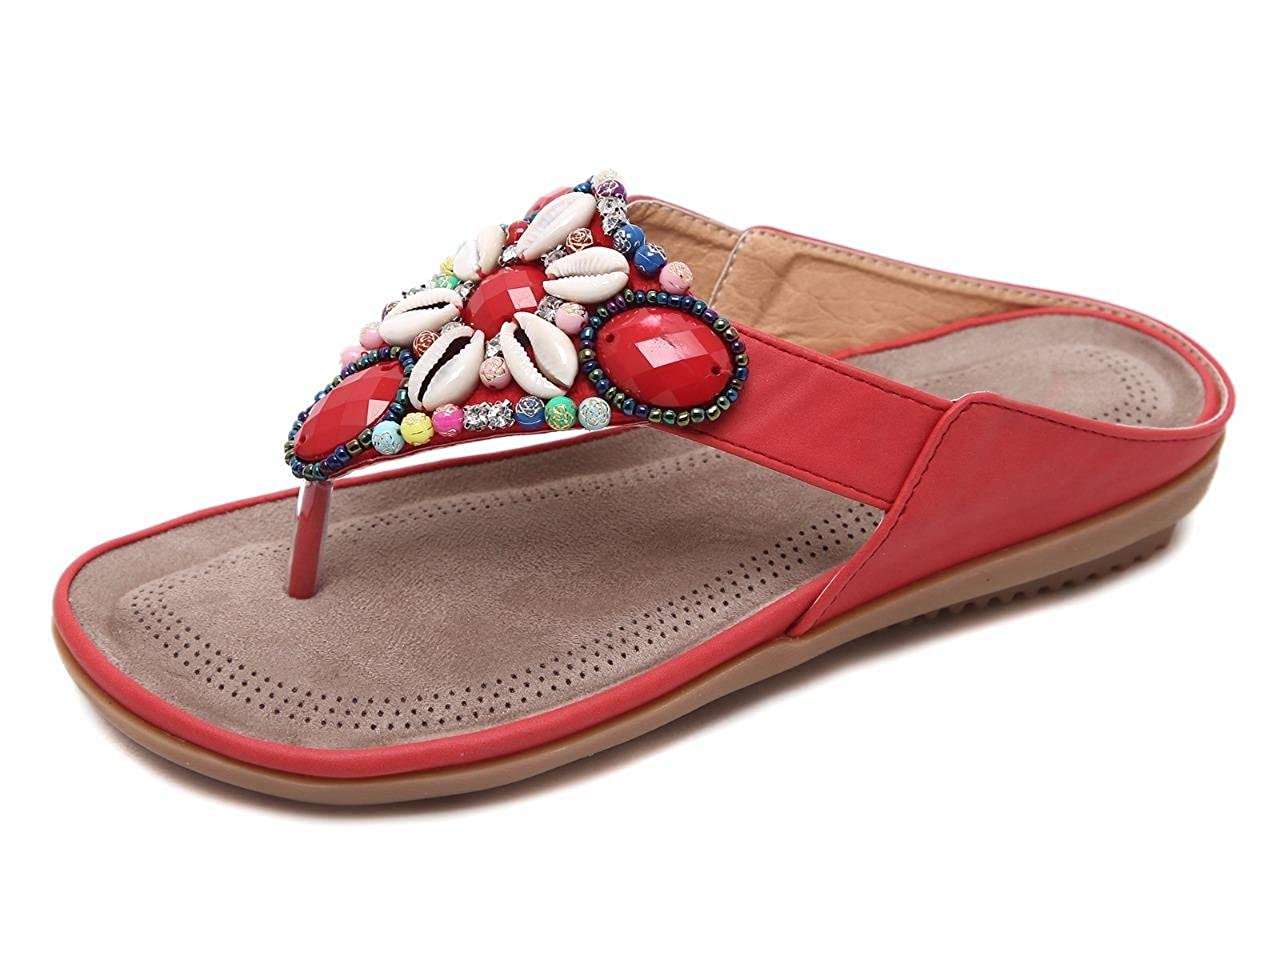 Women's Red Beaded Rhinestone Cowrie Seashell Flat Flip-Flop Sandals - DeluxeAdultCostumes.com